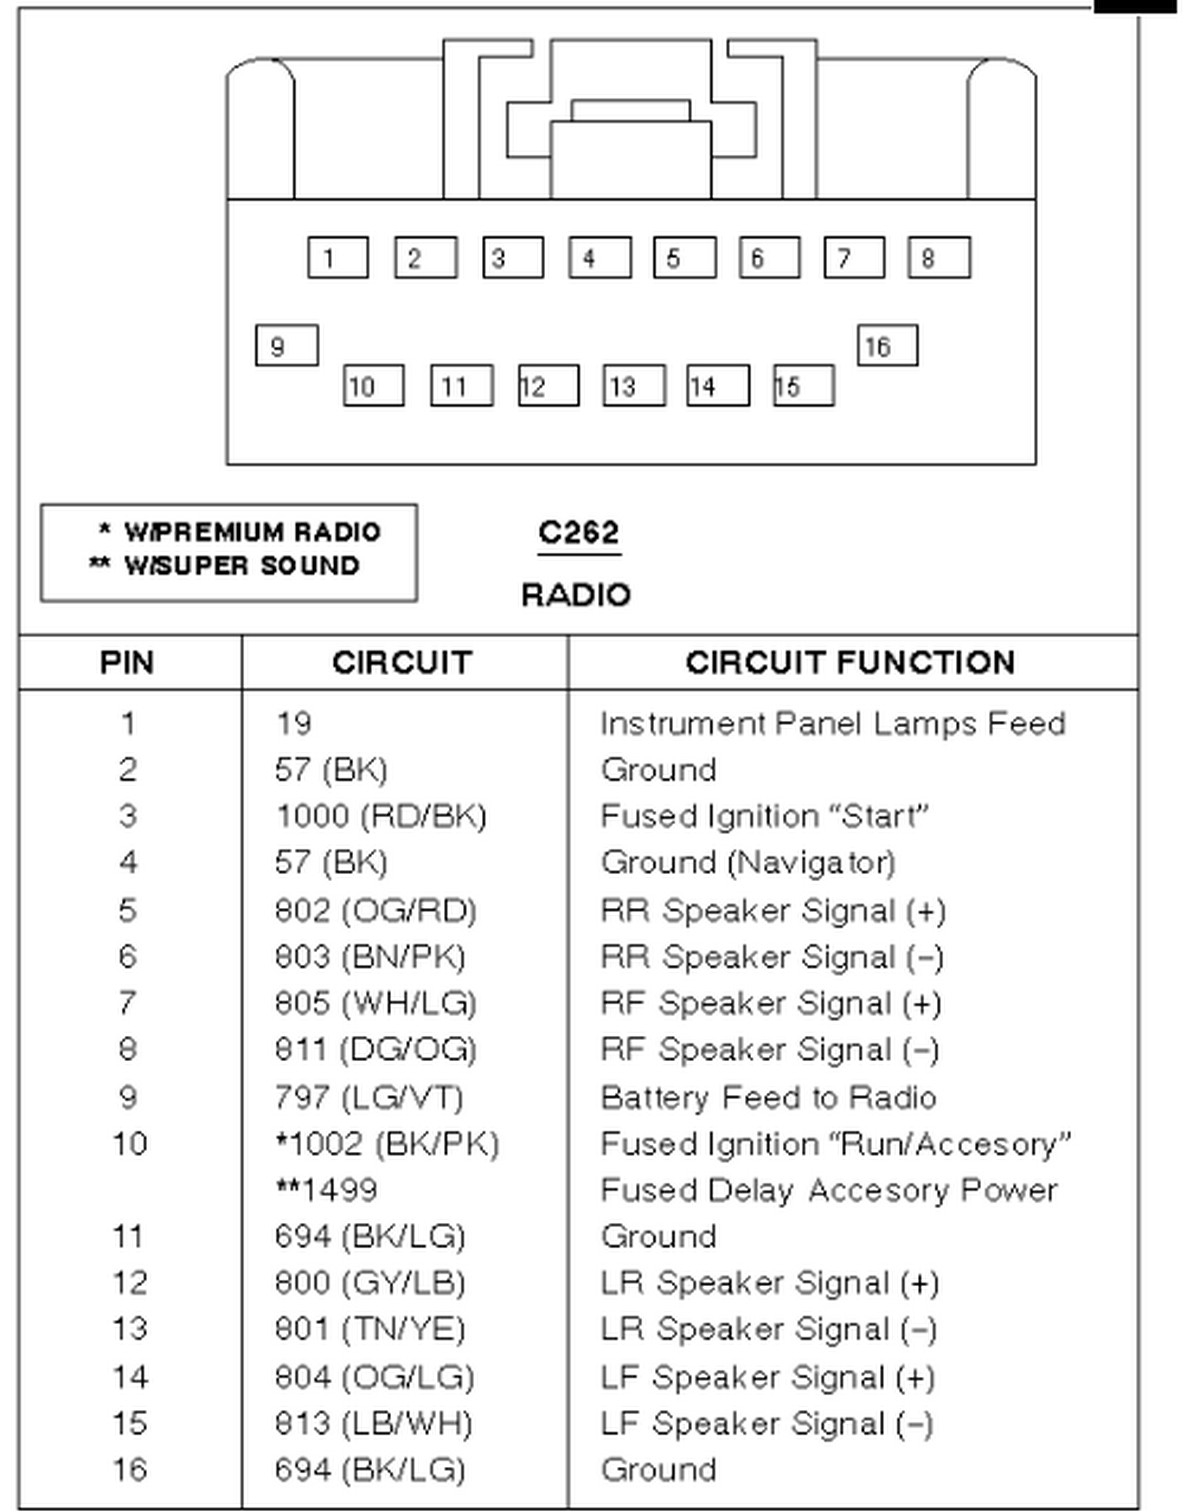 AAMIDIS.blogspot.com: Ford Fiesta Speaker Wiring Diagram